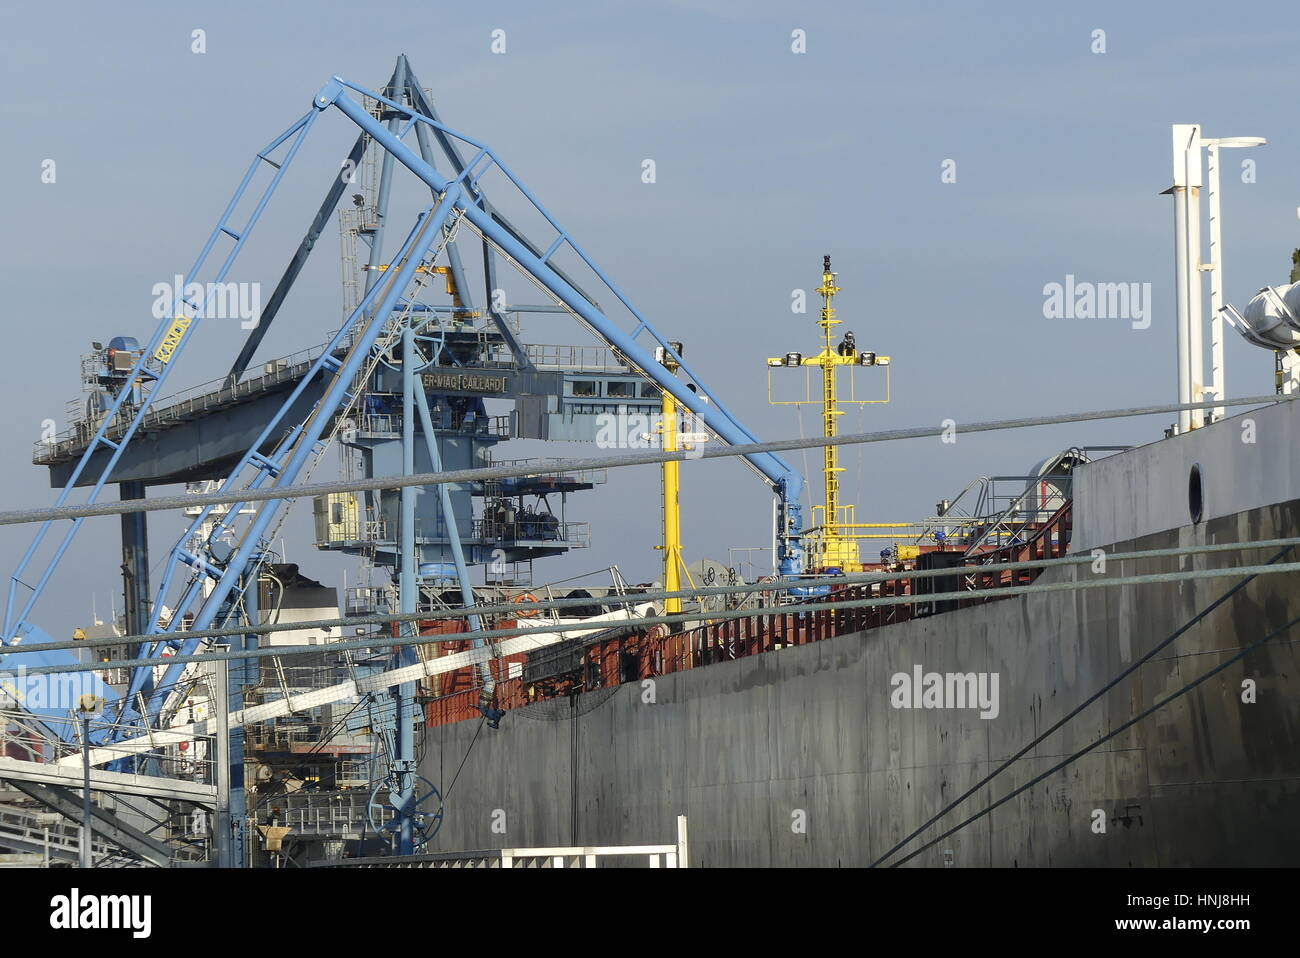 Lorient, France - December 16, 2016: Details of loading arms on shore/ship side on board the motor tanker ' - Stock Image